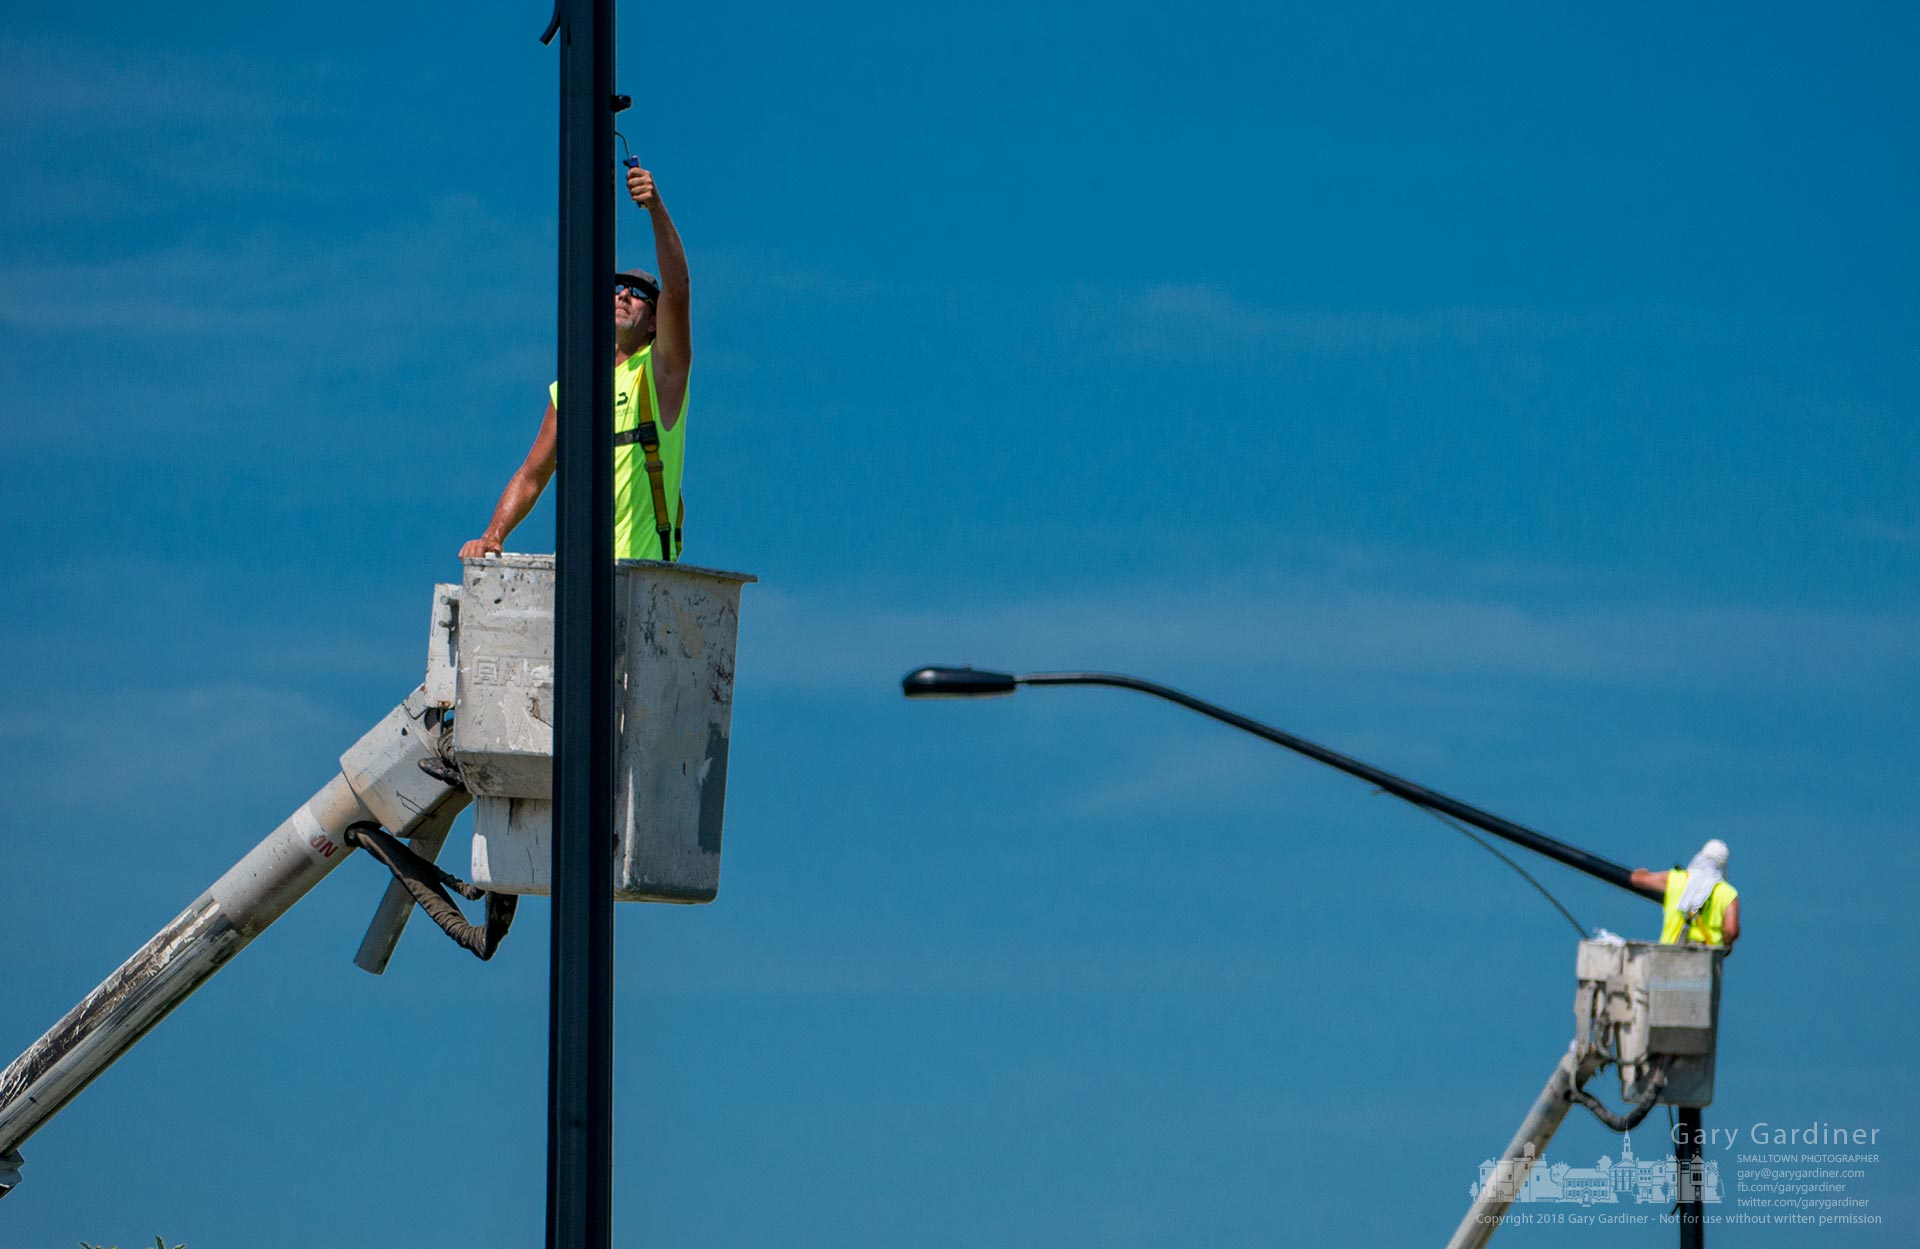 Workers paint the light poles black on County Line Road near Cleveland Ave. as part of a contract to refurbish that section of the roadway. My Final Photo for July 3, 2018.